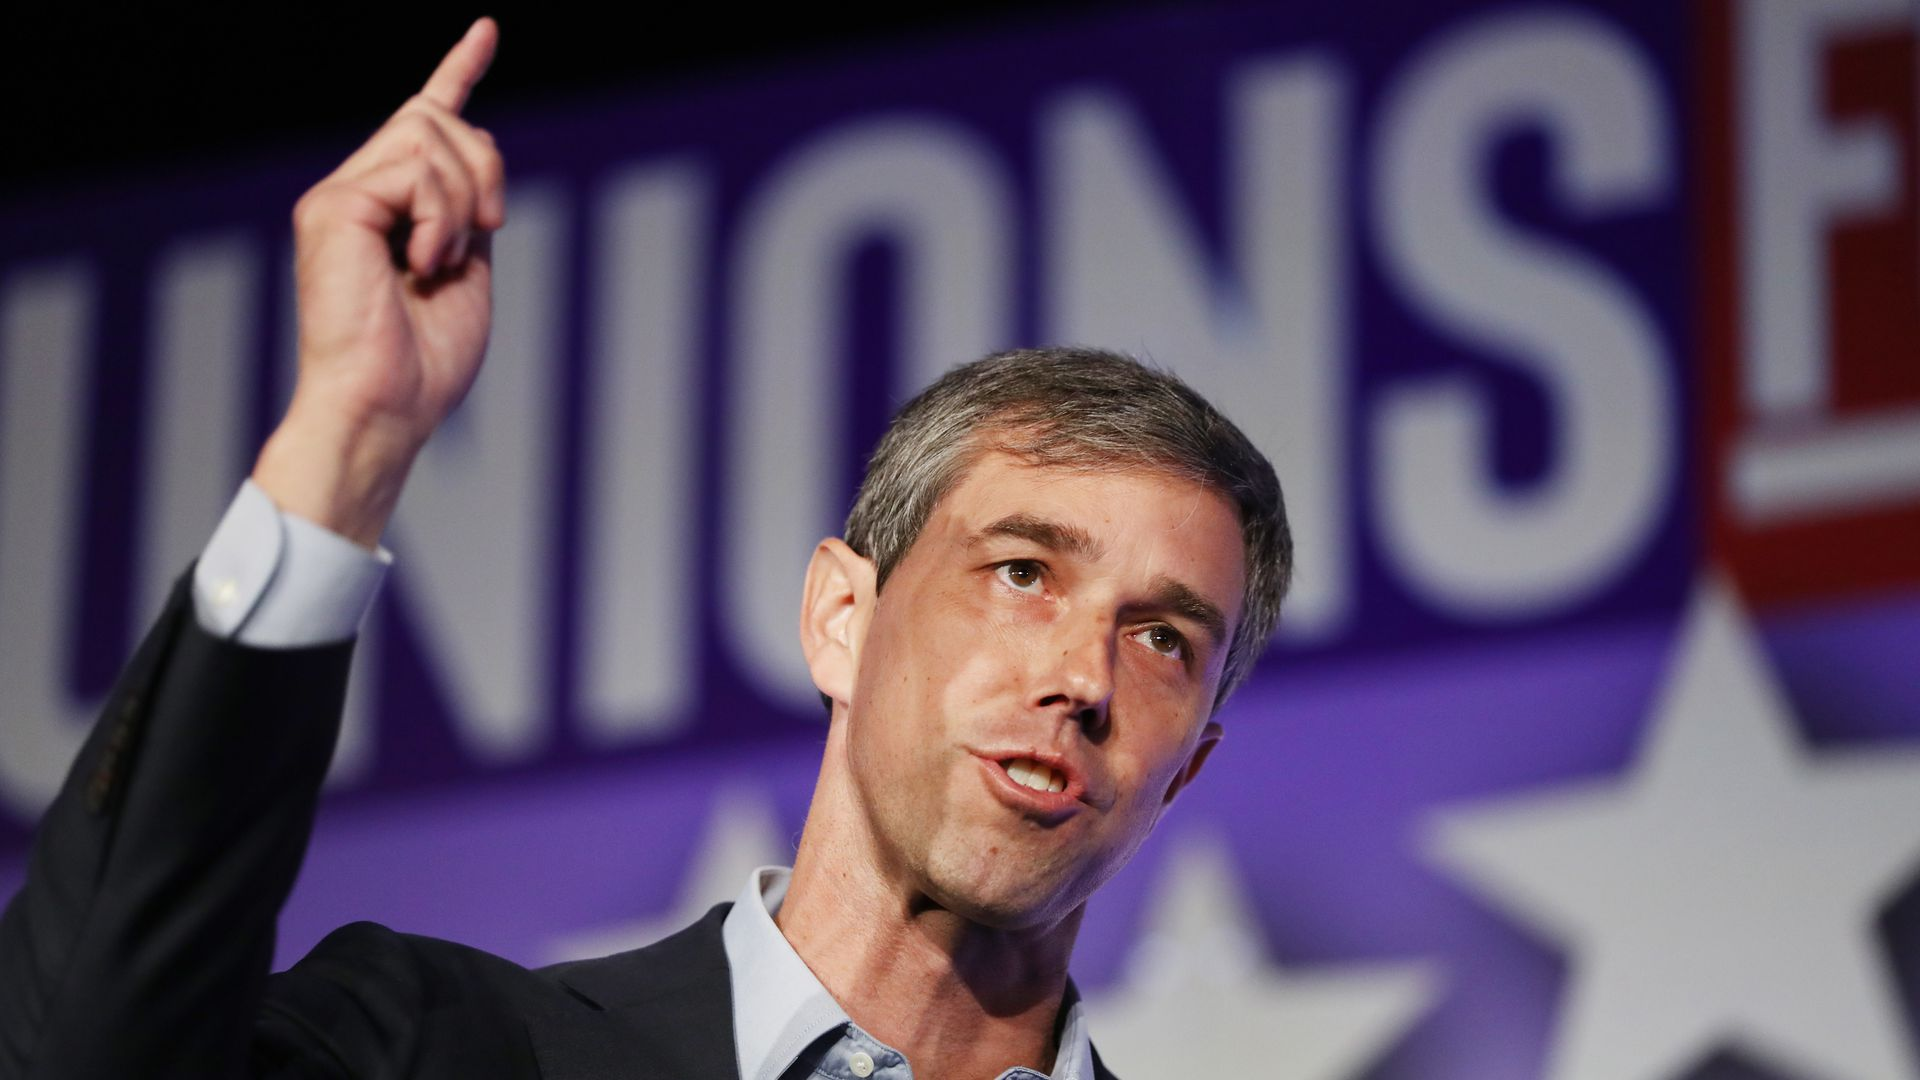 Democratic presidential candidate former U.S. Rep. Beto O'Rourke (D-TX) speaks at the SEIU Unions for All Summit on October 5, 2019 in Los Angeles, California.